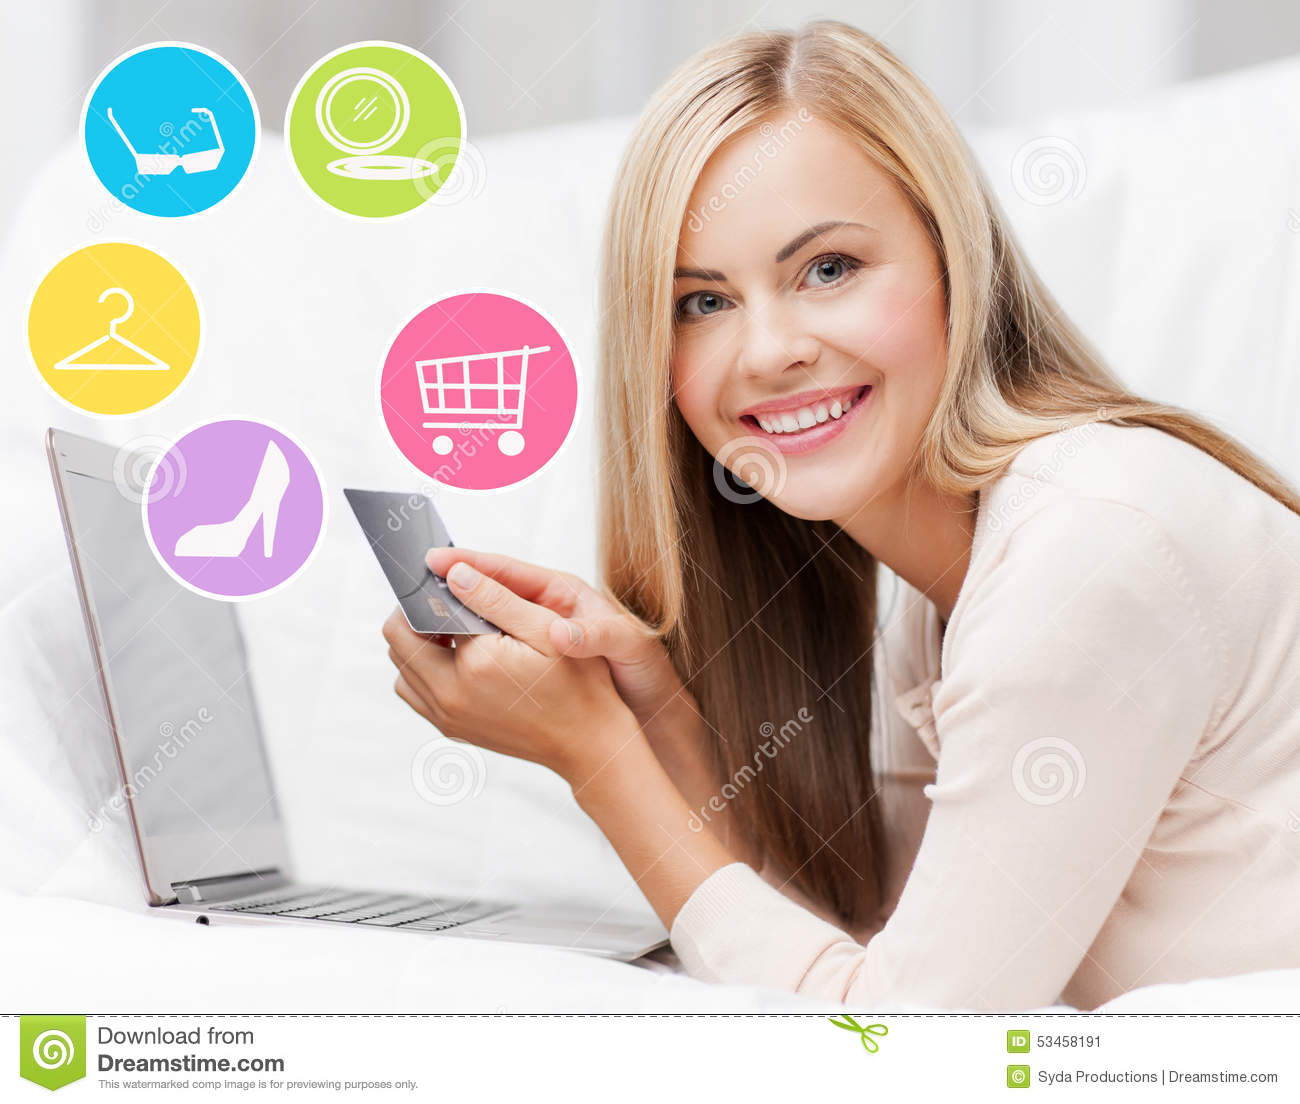 happy-woman-laptop-credit-card-shopping-online-sale-fashion-people-concept-housewife-home-53458191.jpg